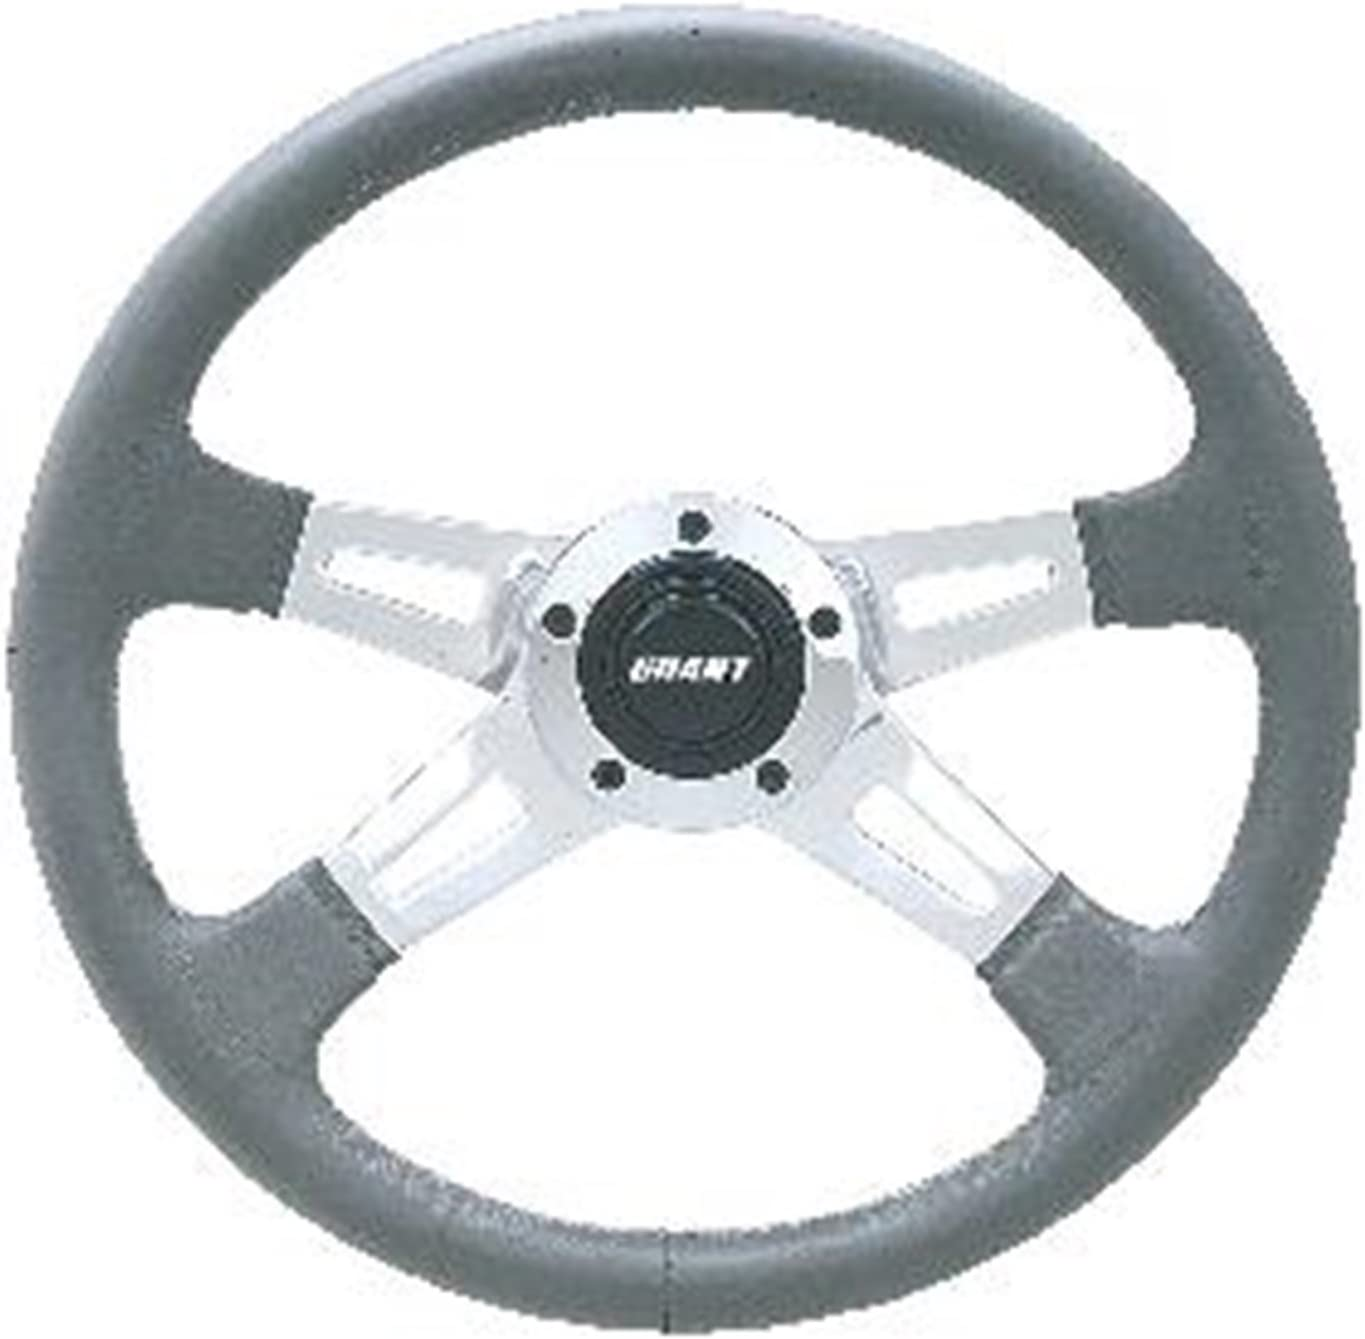 Grant Products 1151 Collectors Wheel